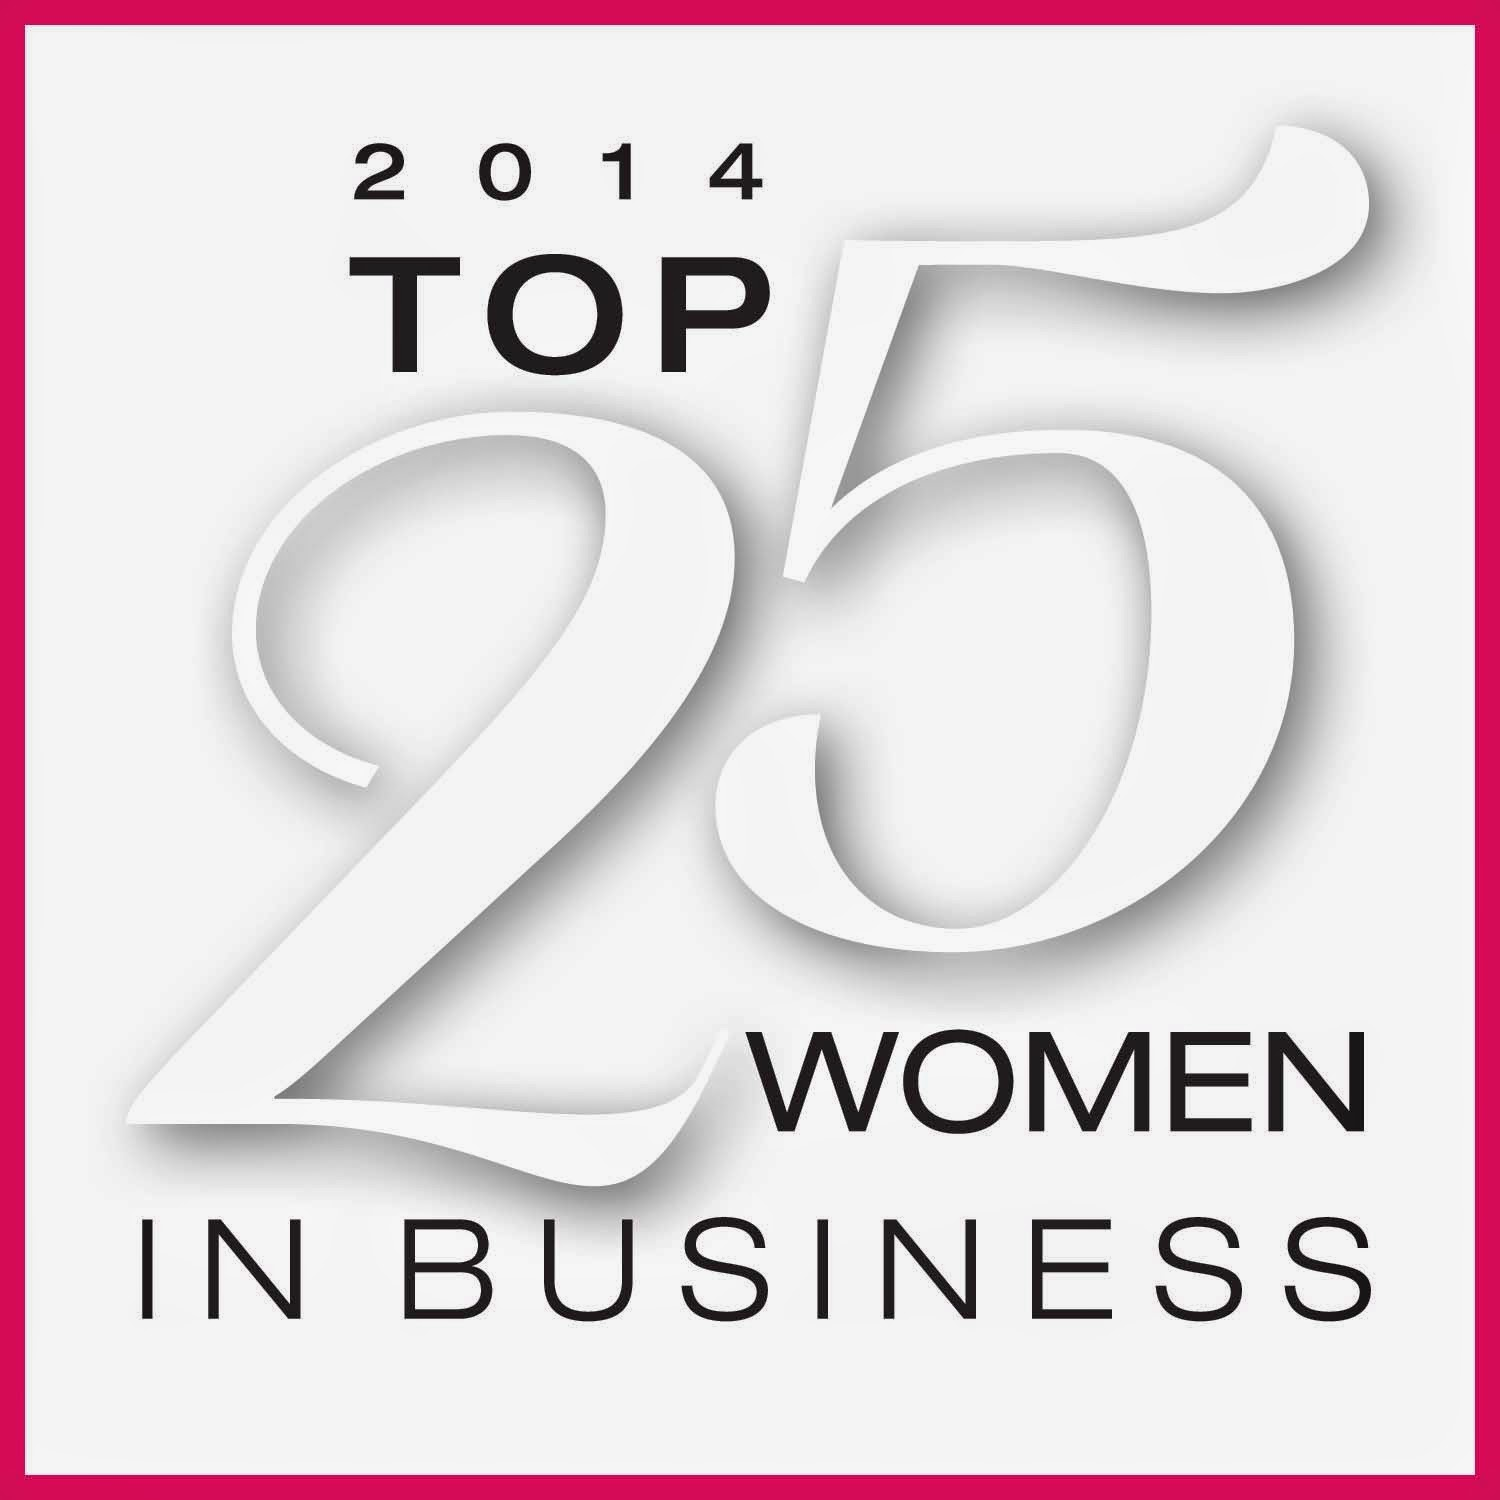 Top 25 Women in Business